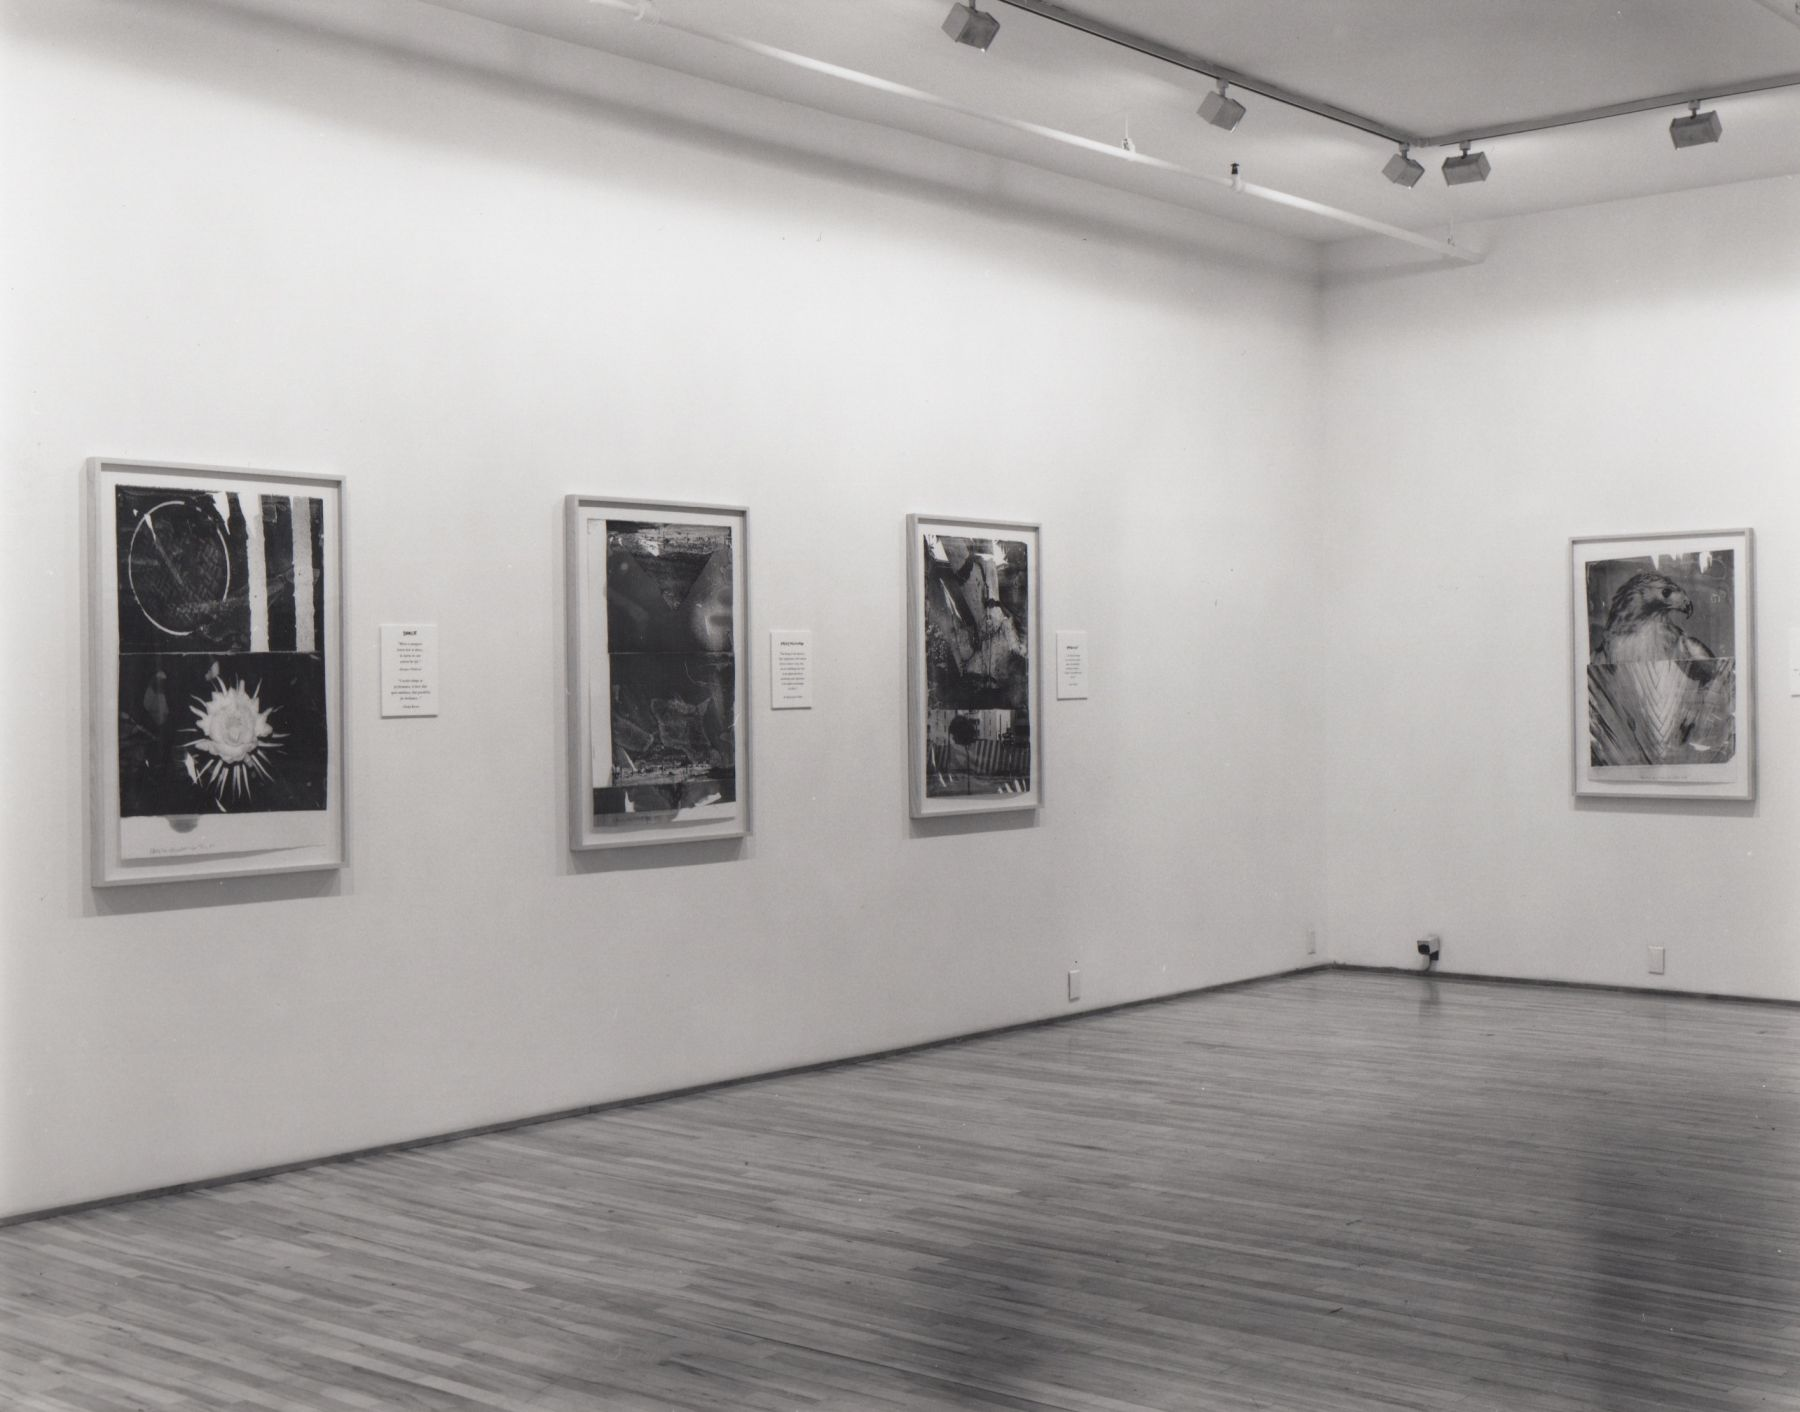 Installation view, Robert Rauschenberg: Tribute 21, 578 BROADWAY